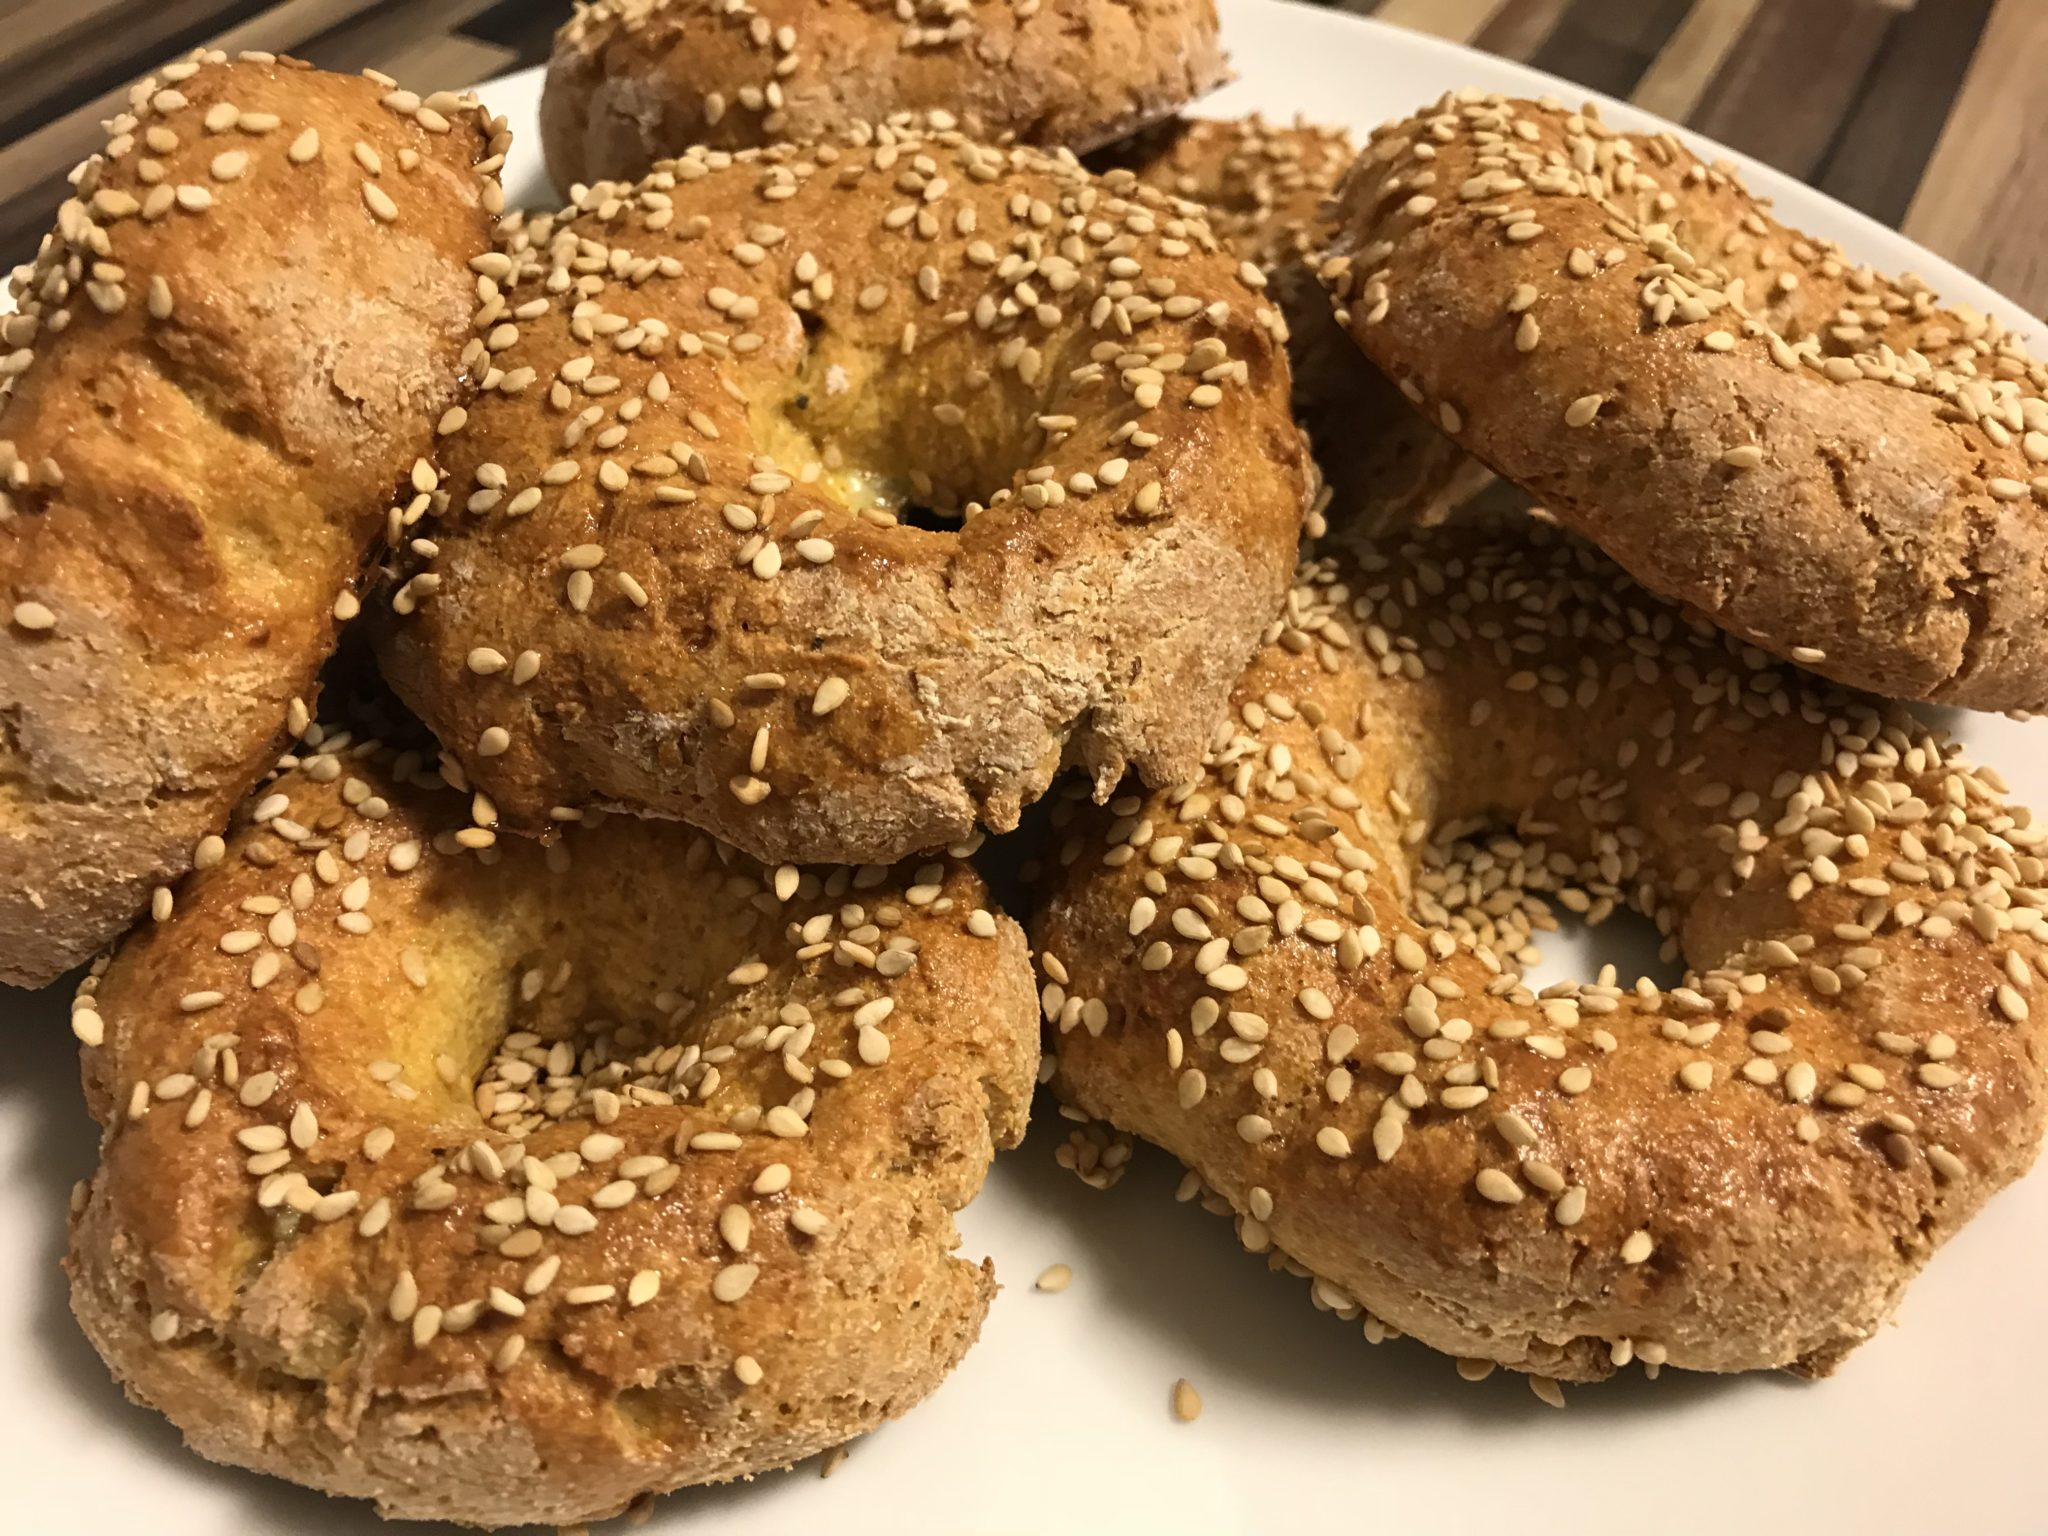 Goldbraune Low-Carb Bagels mit Mozzarella